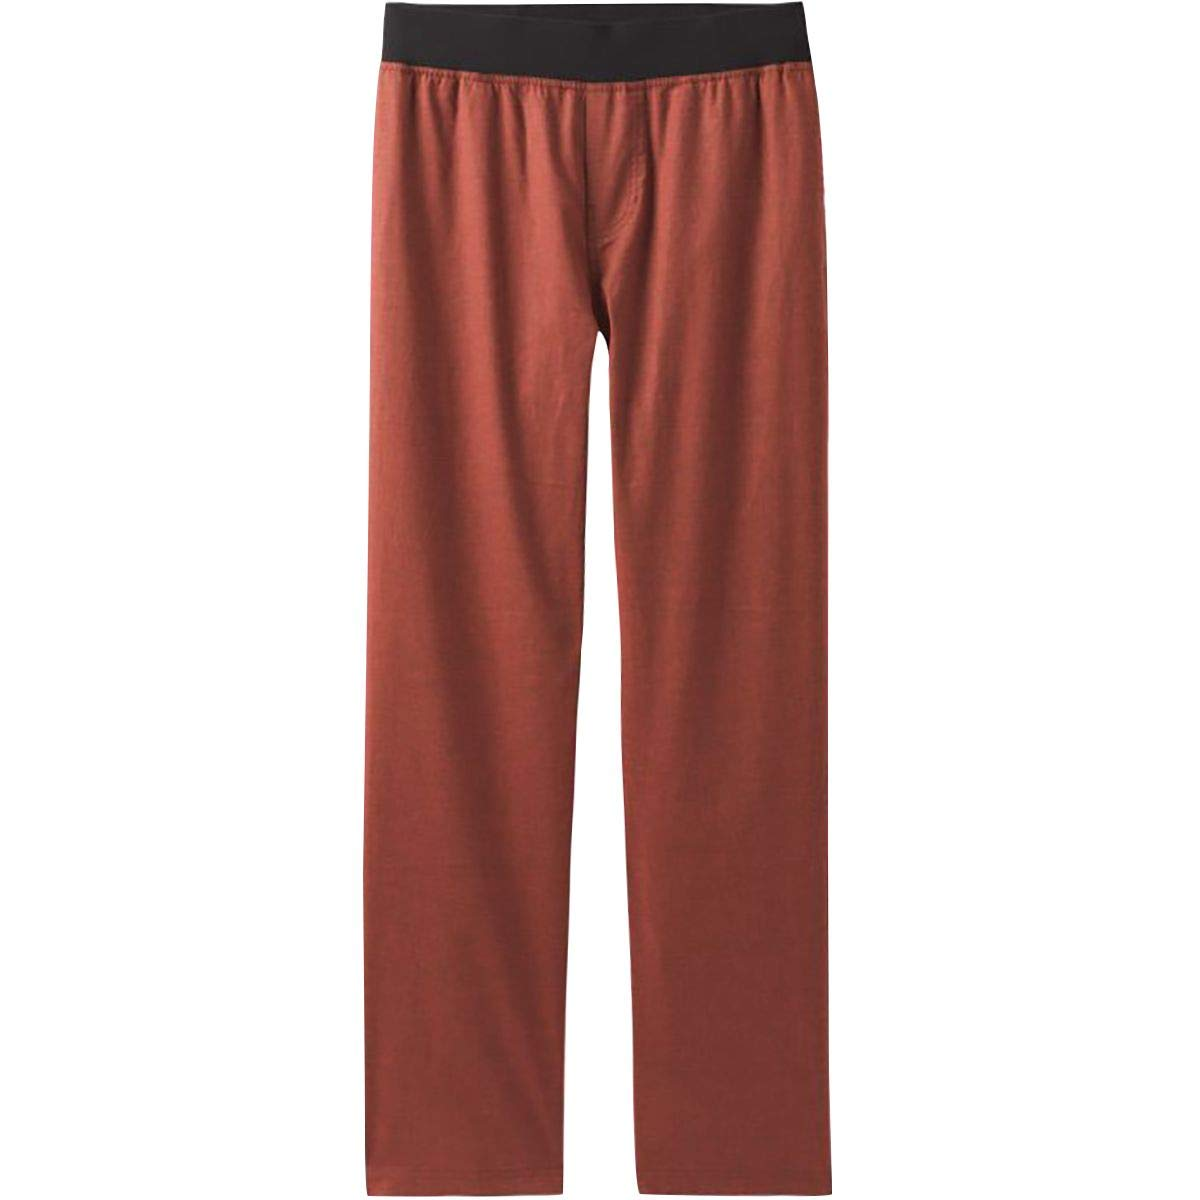 prAna Vaha Pant - Men's Maple, S-30 by prAna